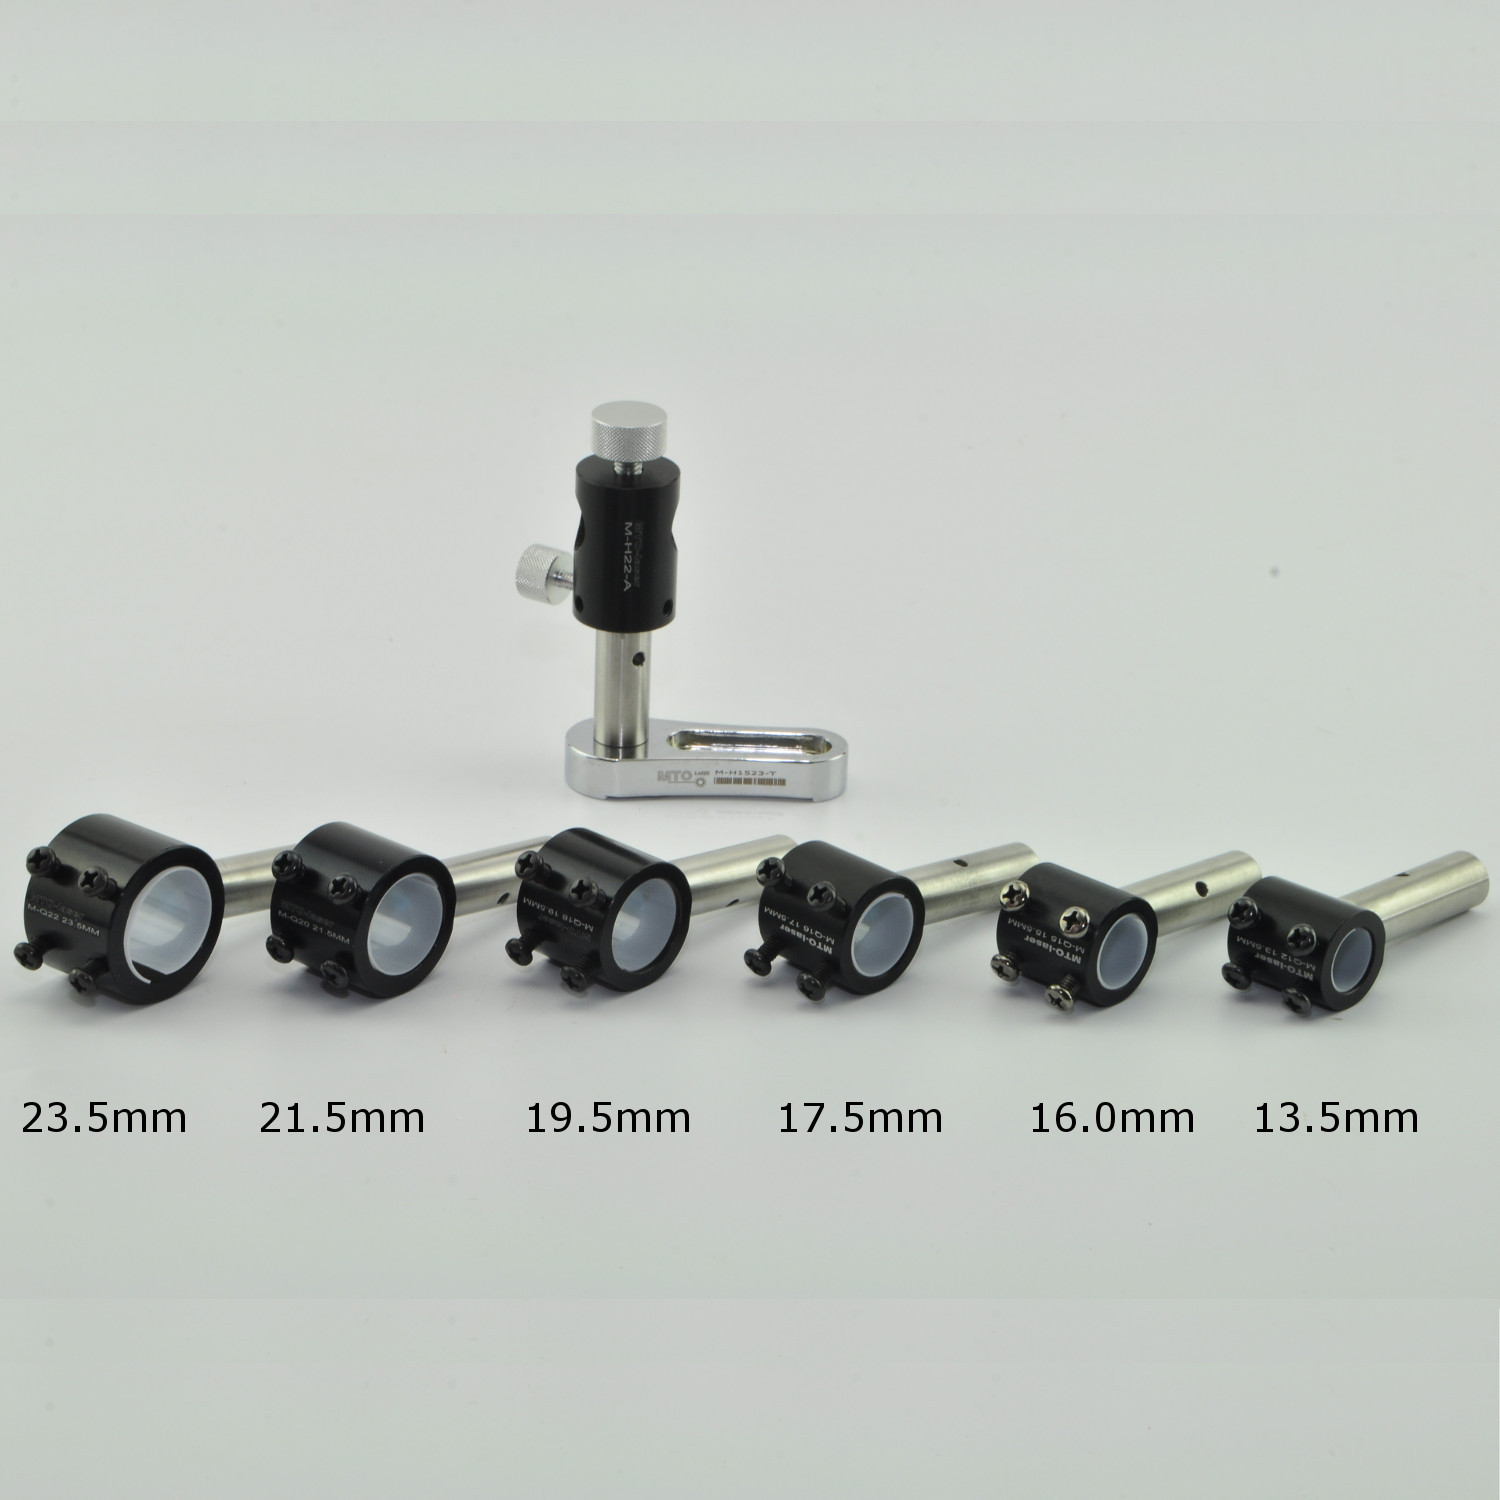 MTO HT2 Two Laser Axis 360° Positioning Shockproof Bracket Holder for 13.5mm-21.5mm Laser Module